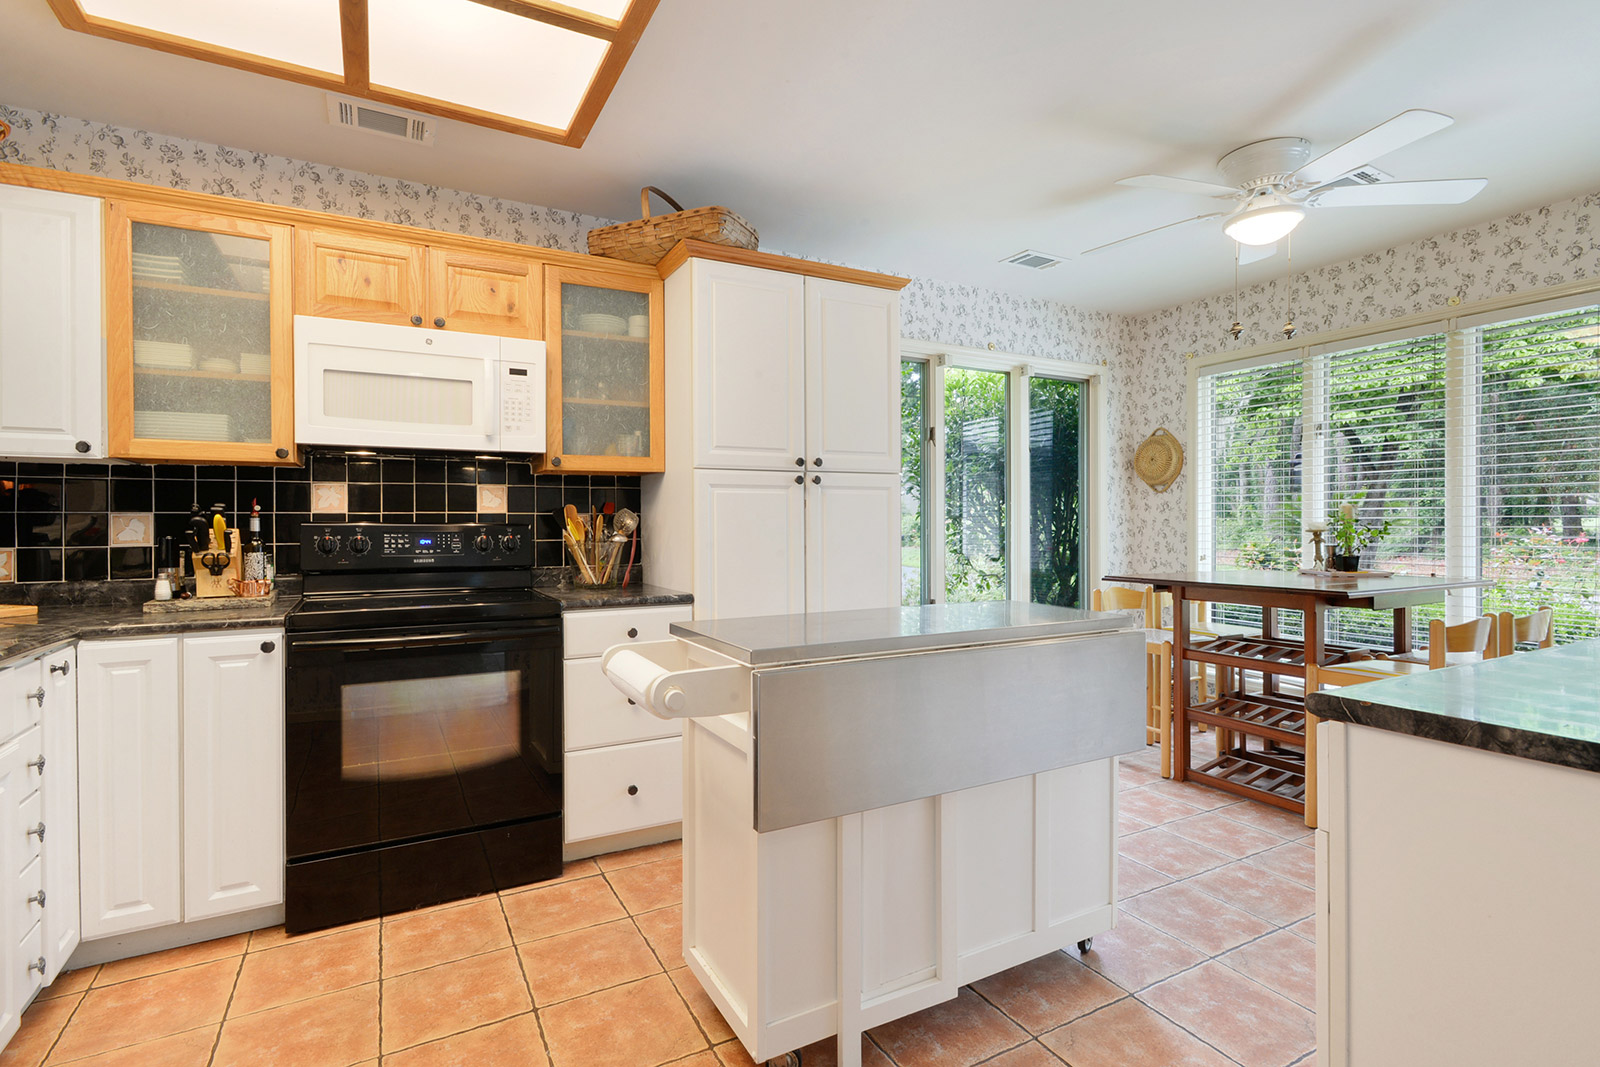 625 S Reeve Rd Kitchen